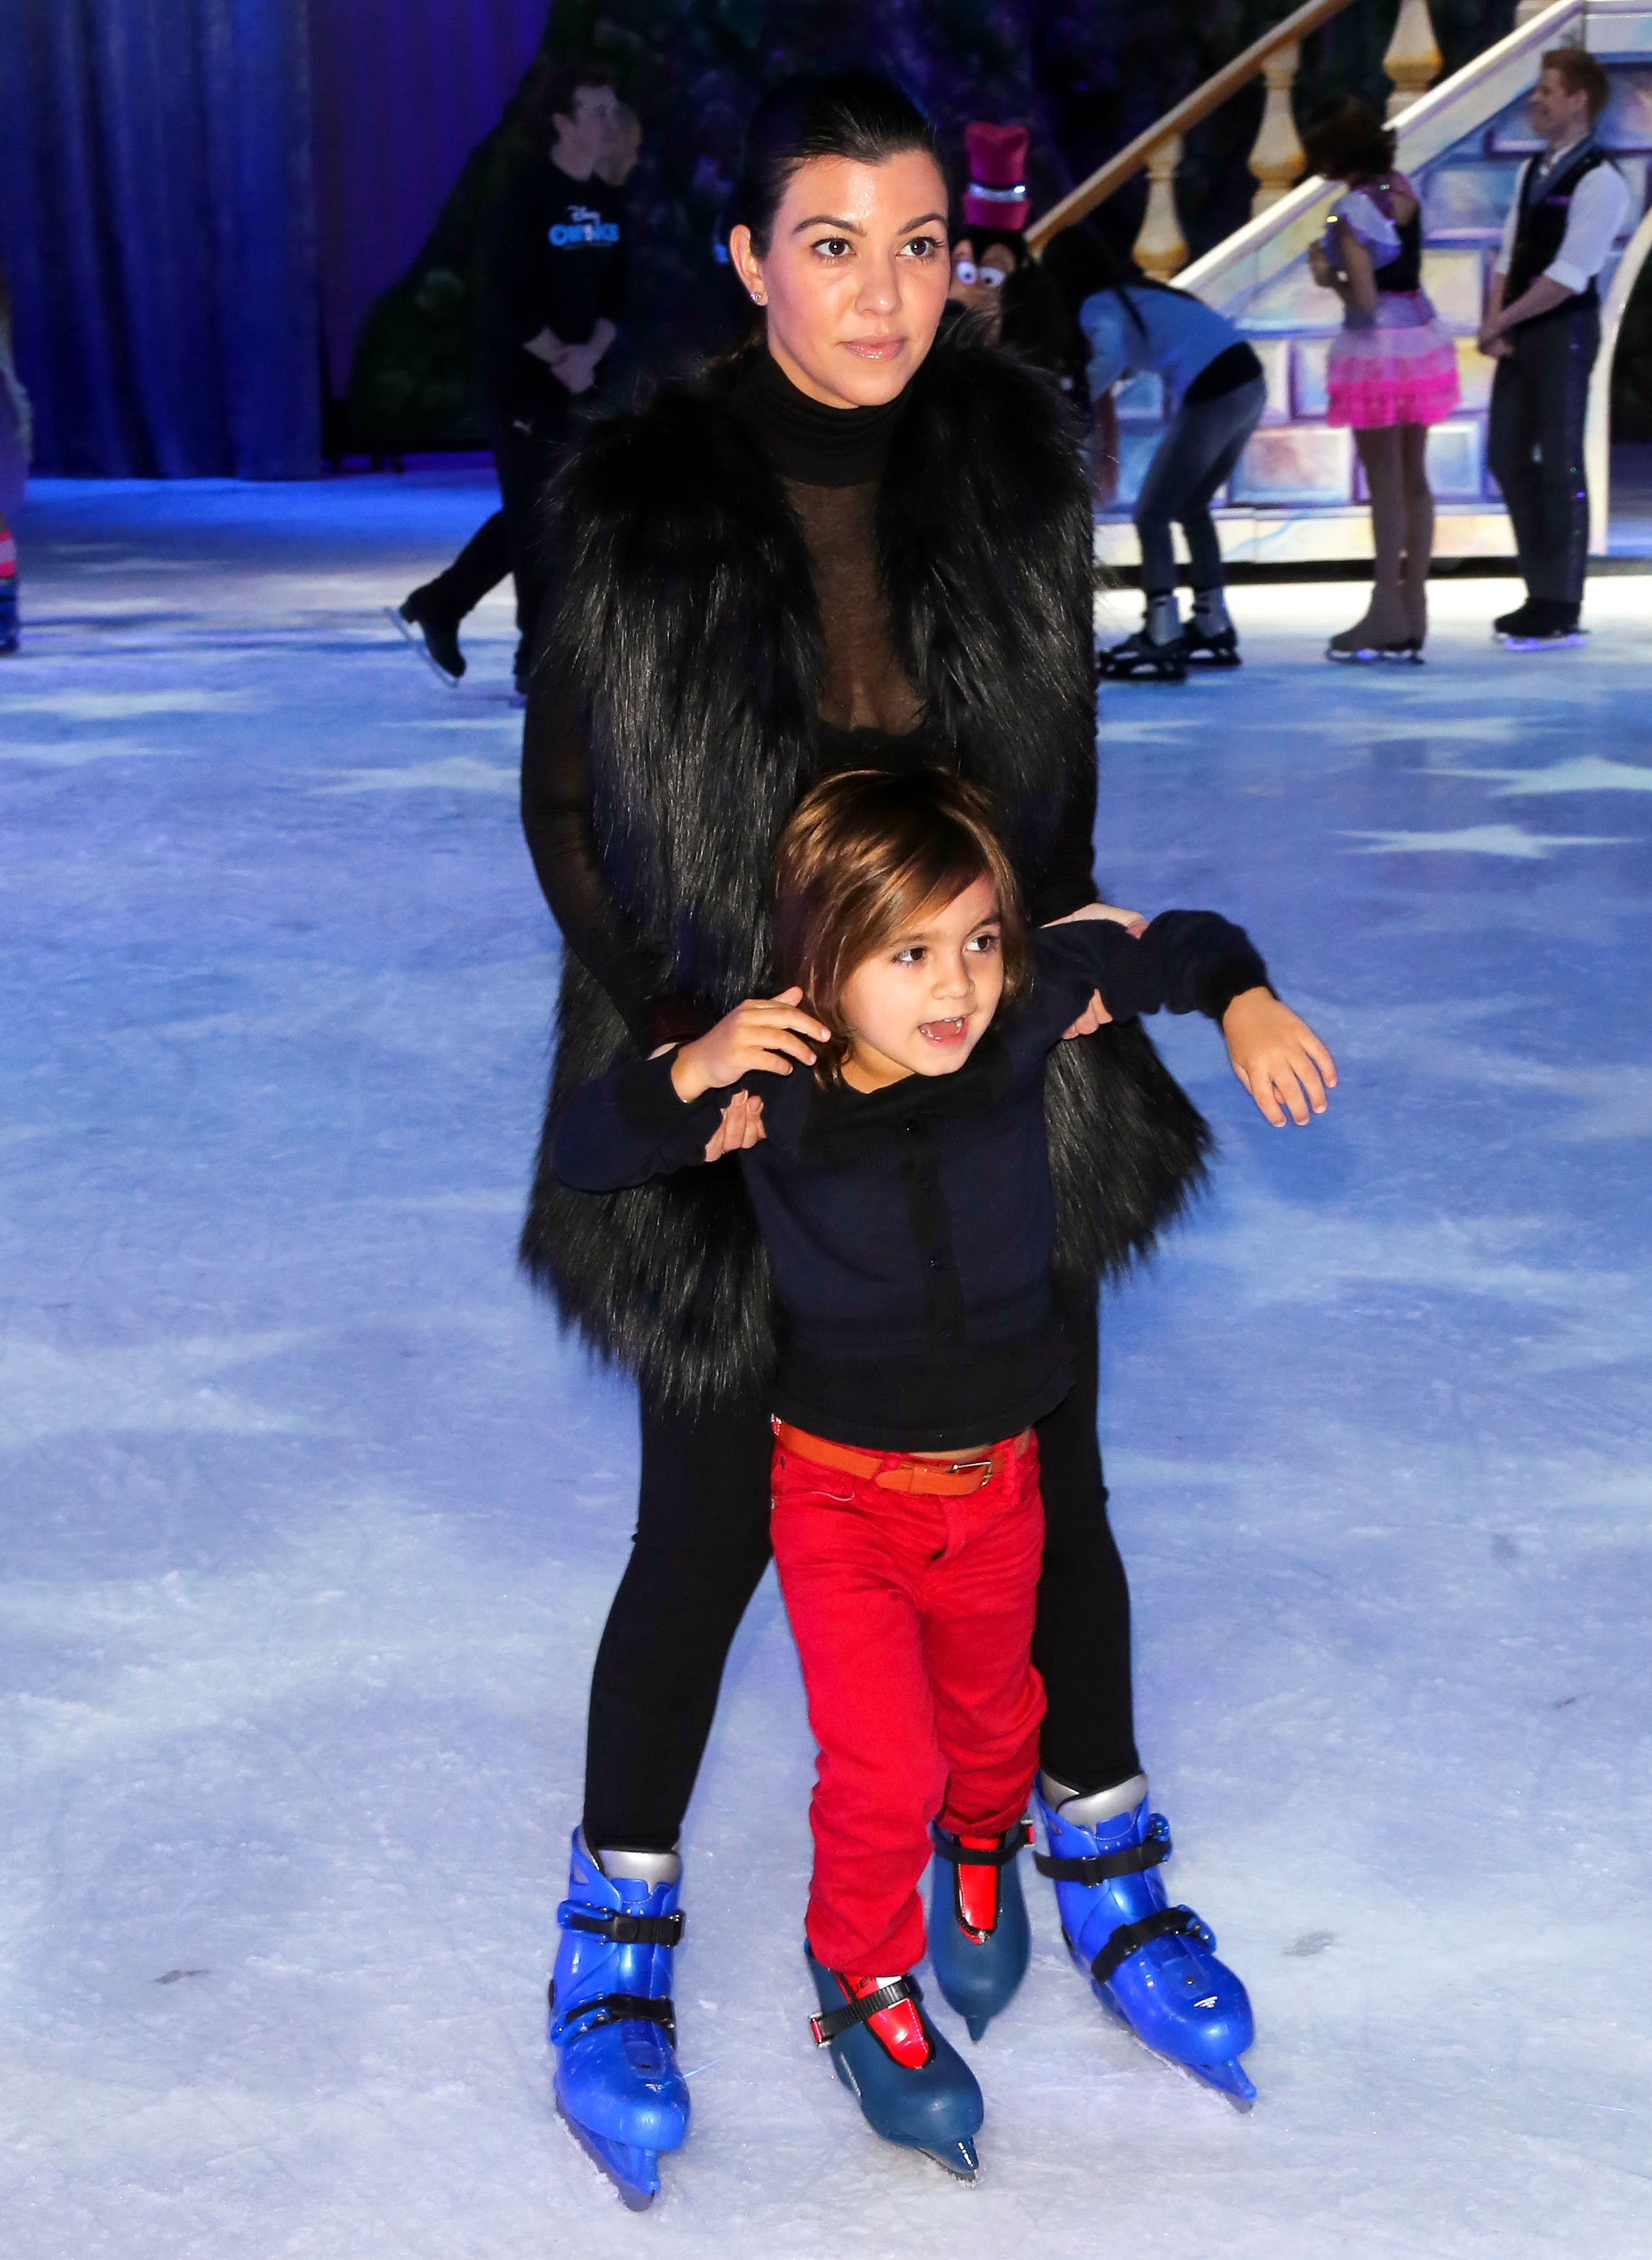 """Kourtney Kardashian Through the Years - After welcoming daughter Penelope in 2012, Kourtney told her sisters on an episode of KUWTK that having kids """"is what life is about."""""""